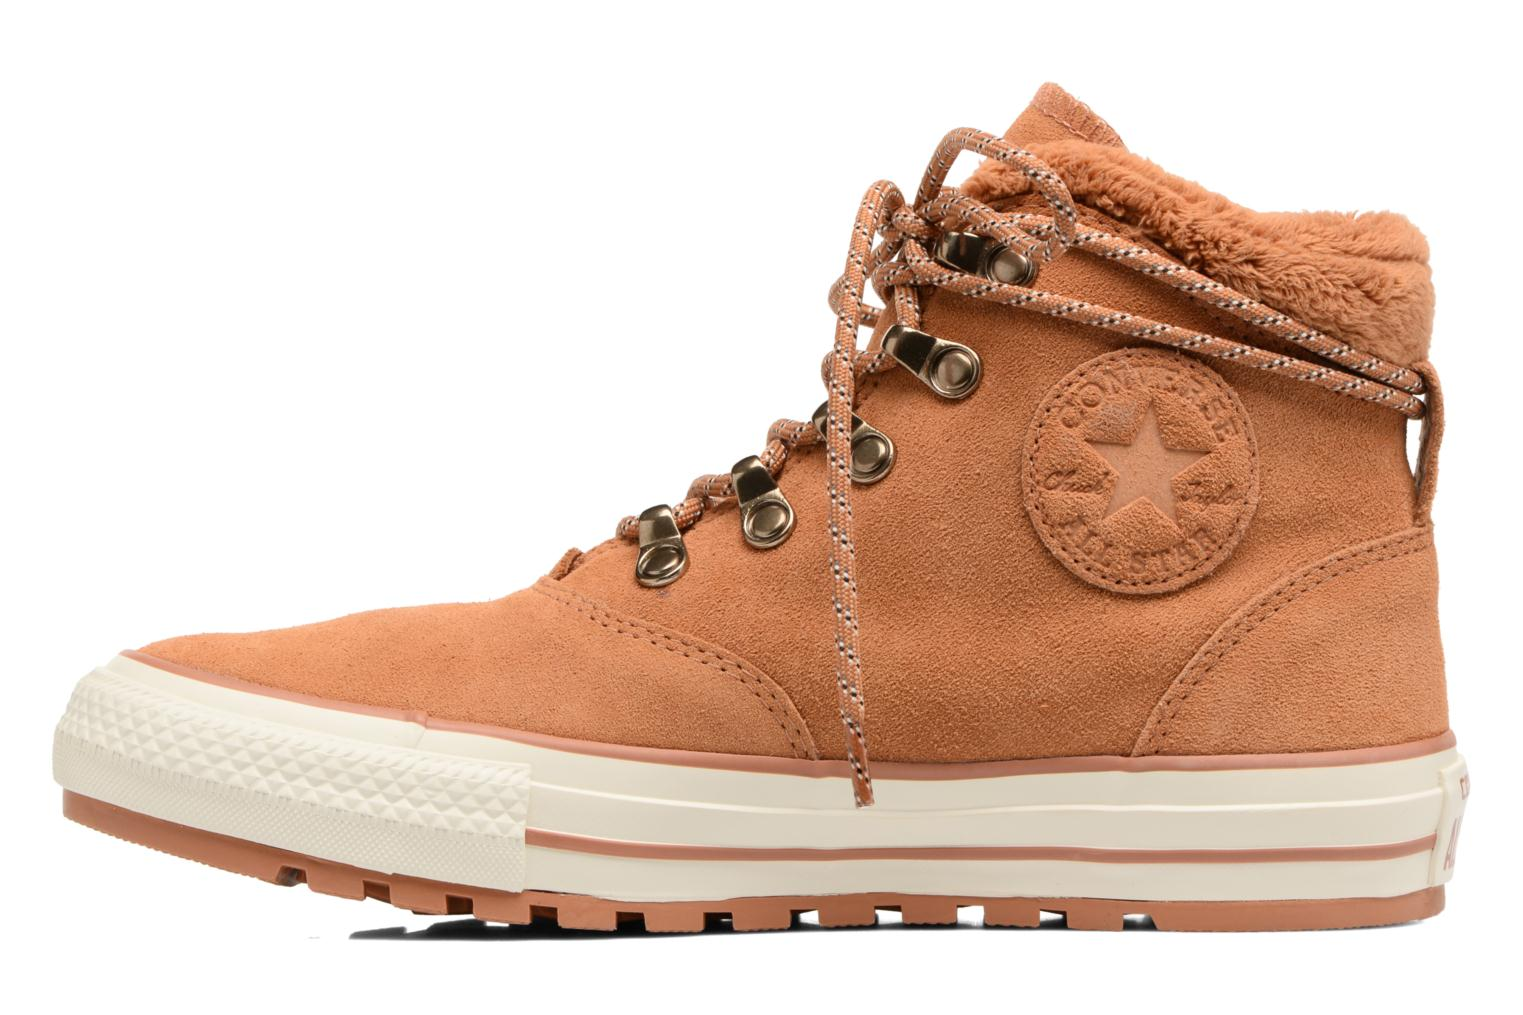 Bottines et boots Converse Chuck Taylor All Star Ember Boot Suede + Fur Hi Marron vue face